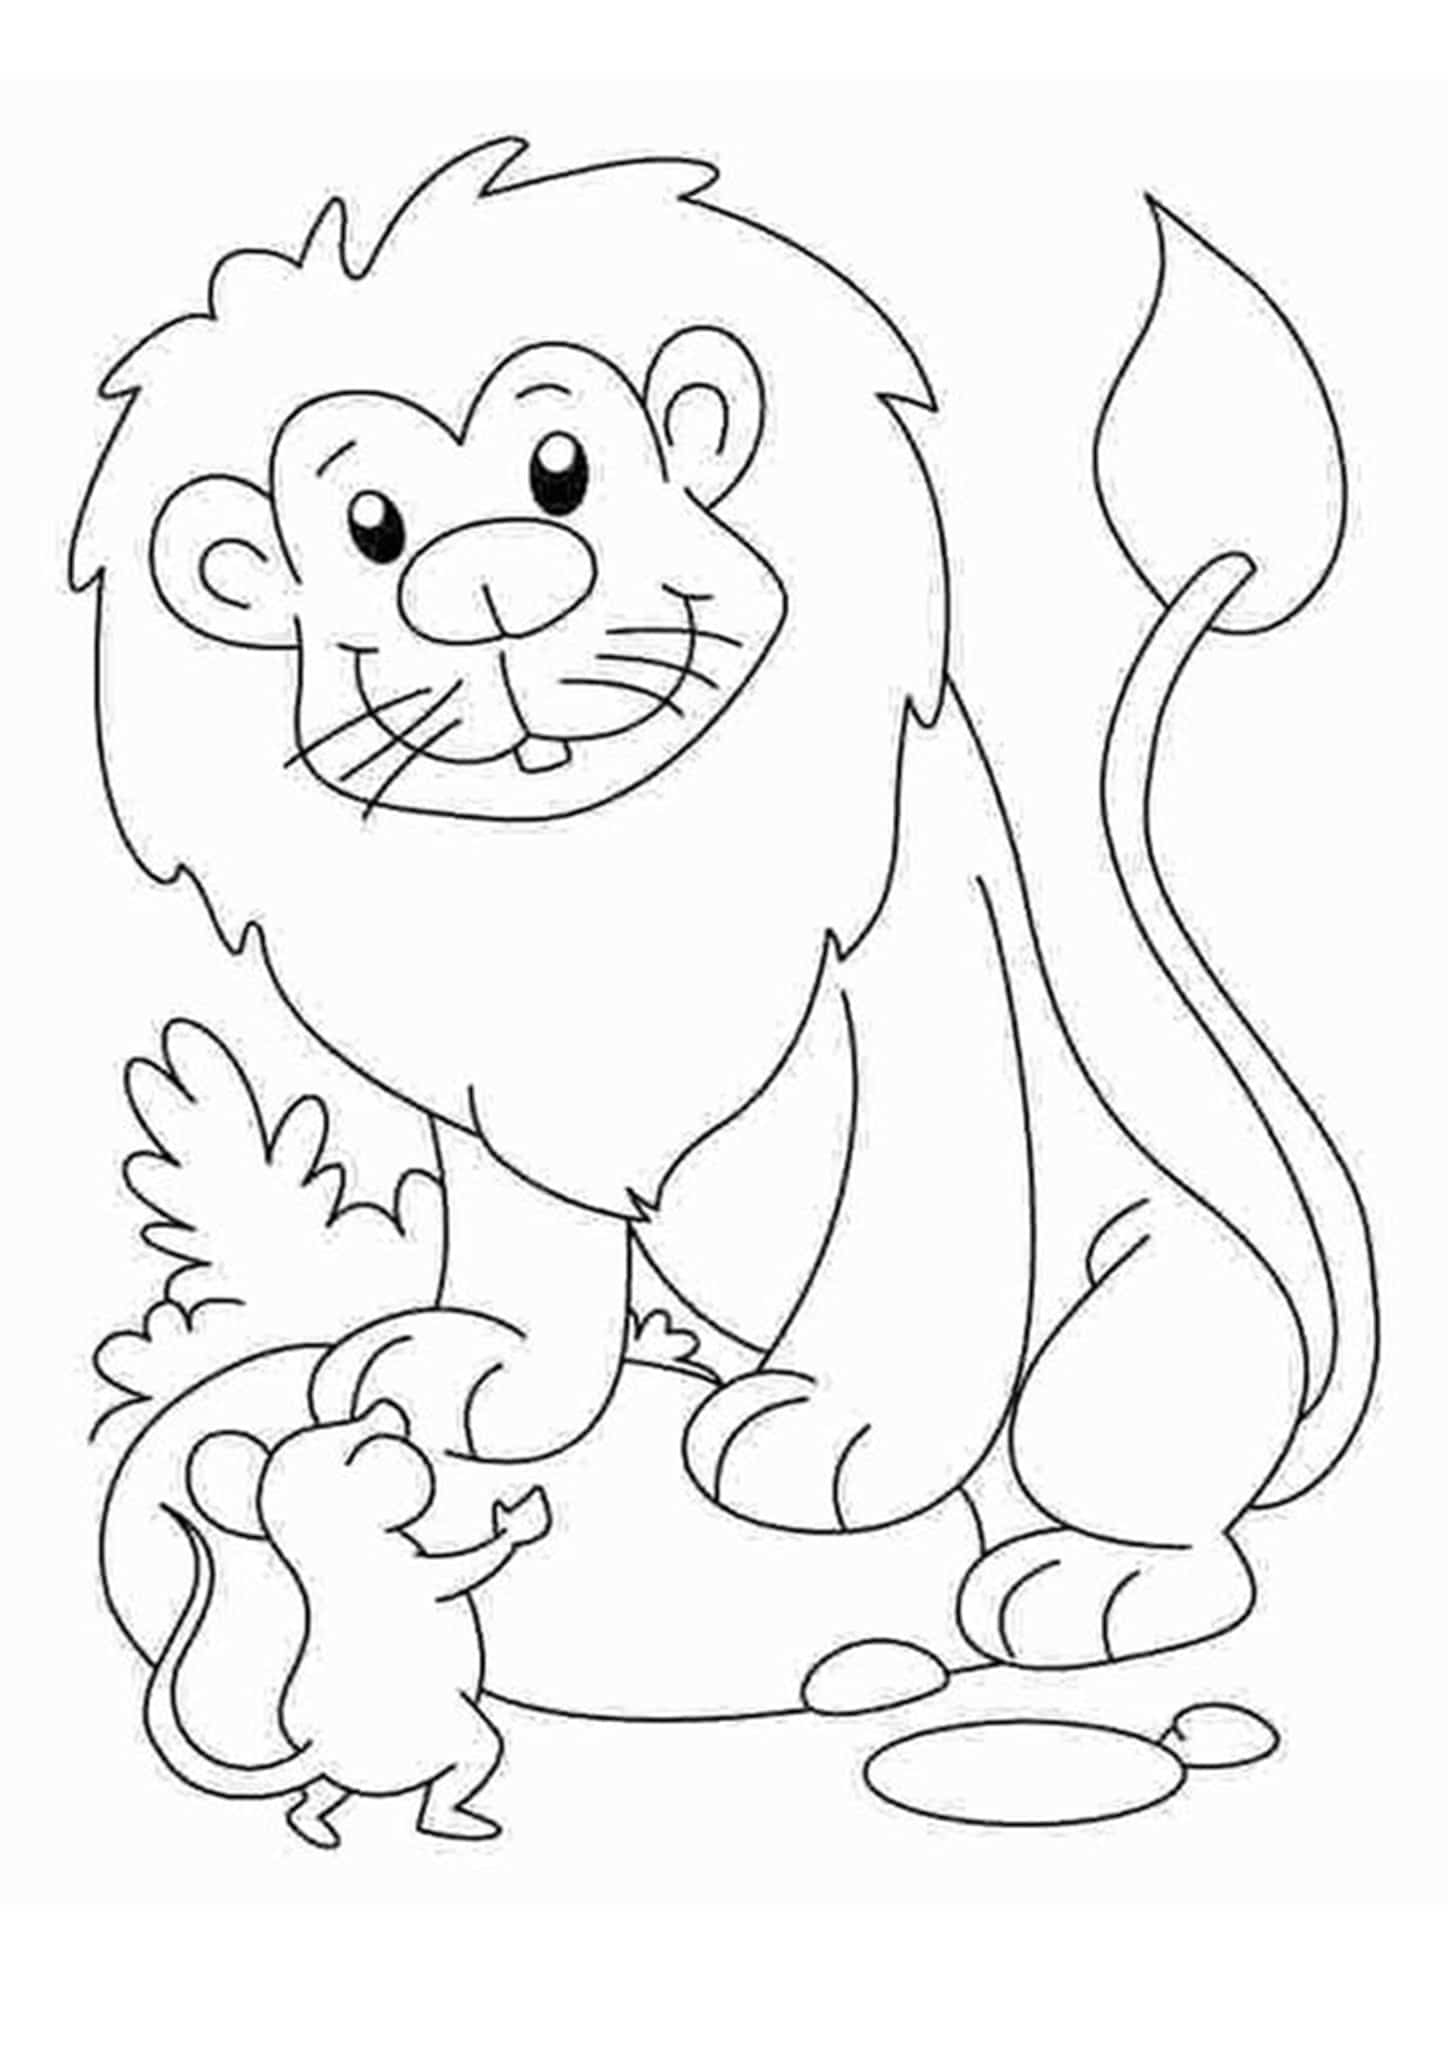 picture of a lion to color free easy to print lion coloring pages tulamama picture a to of lion color